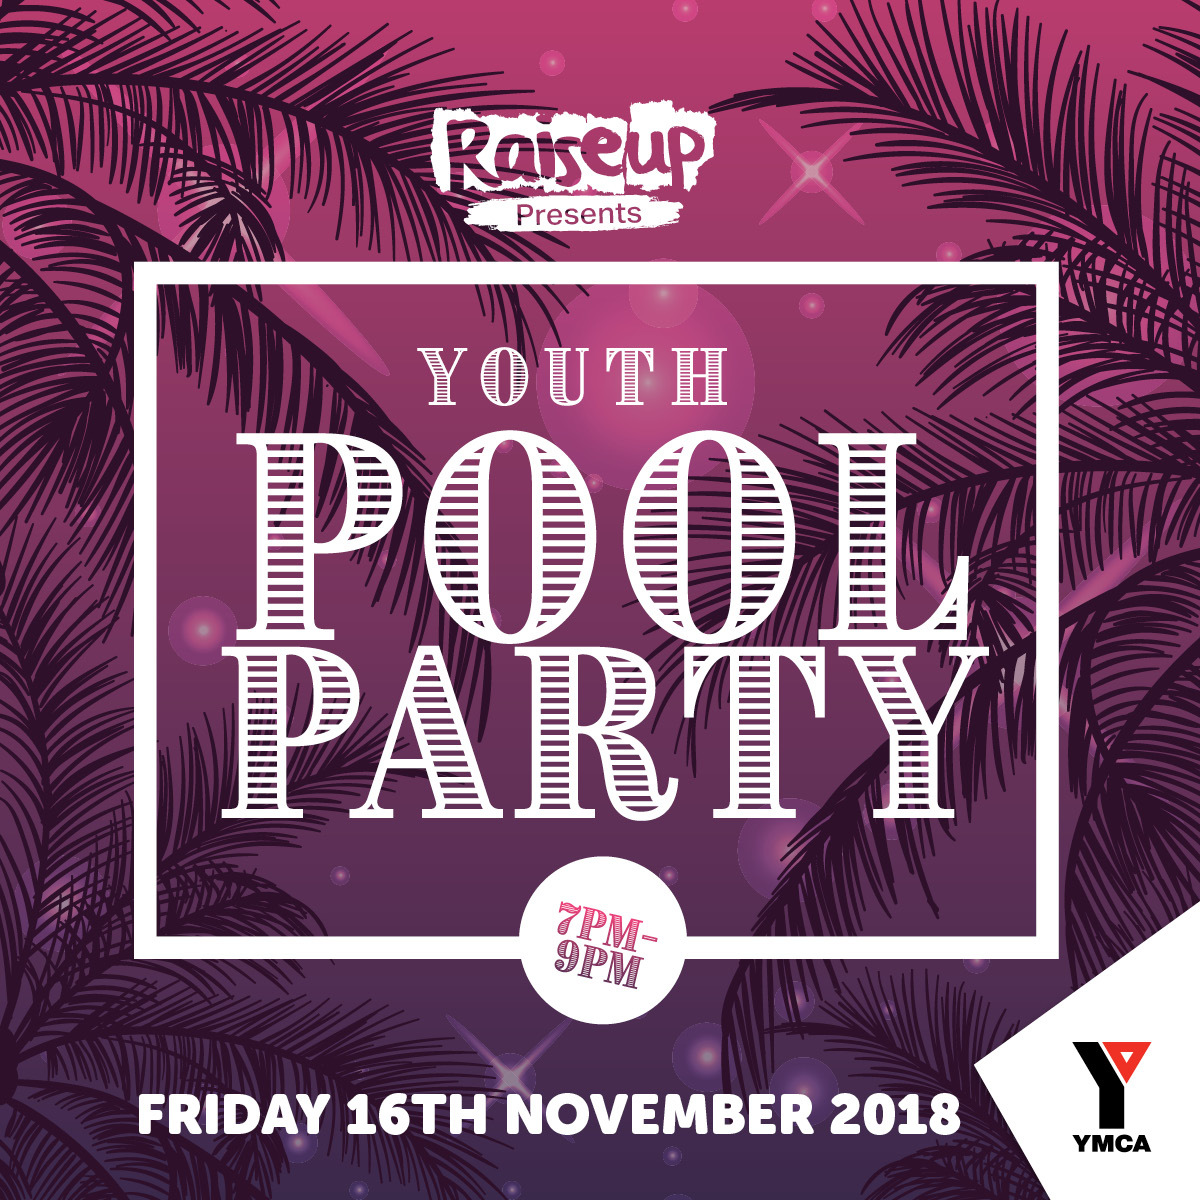 Y2565-Mangere-Youth-Pool-Party-FB-post.j